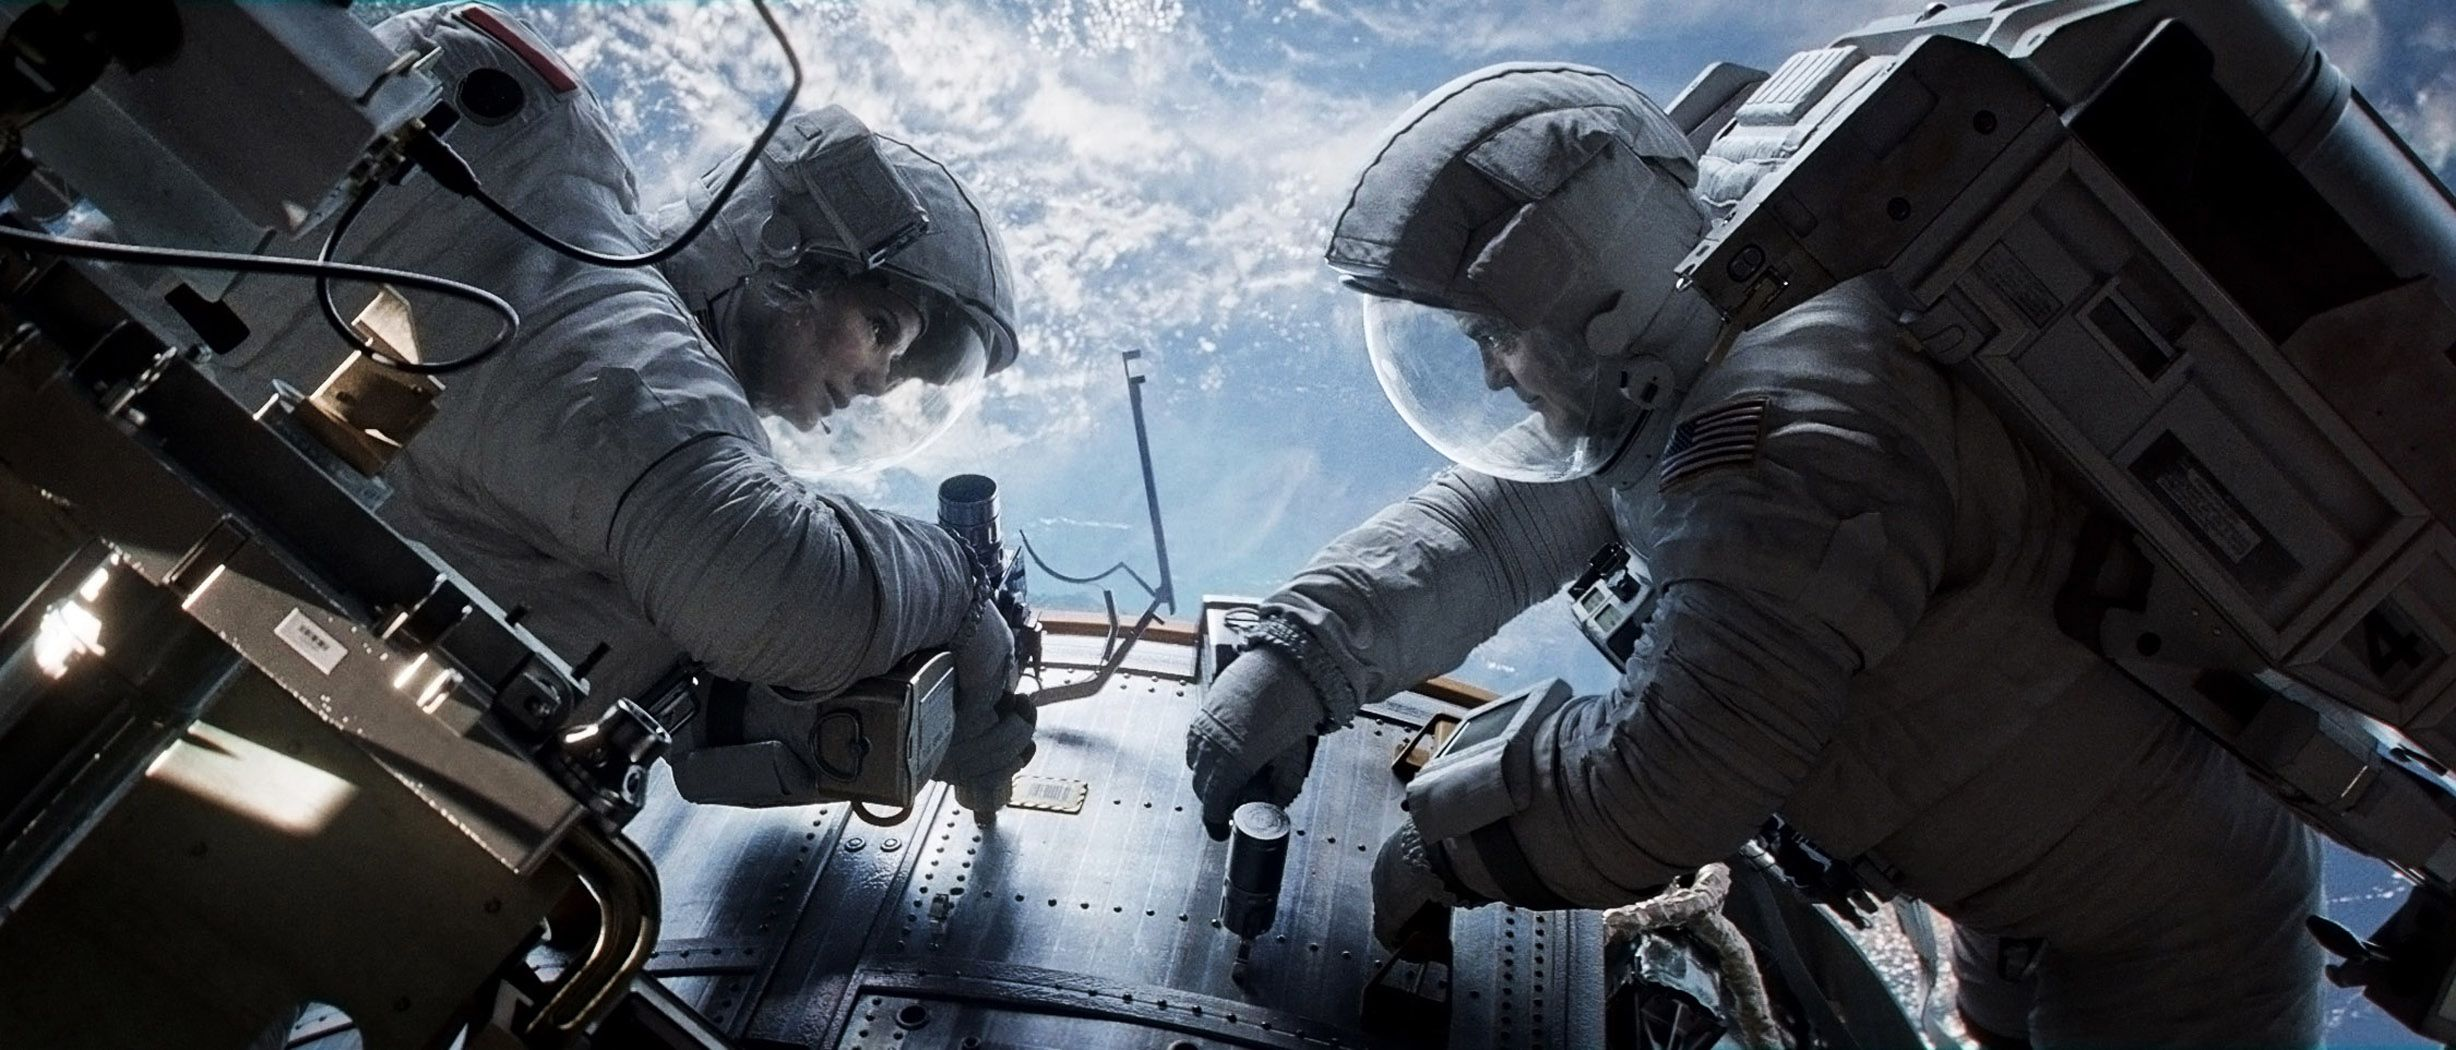 George Clooney: Career in pictures | Gravity movie, Space ...